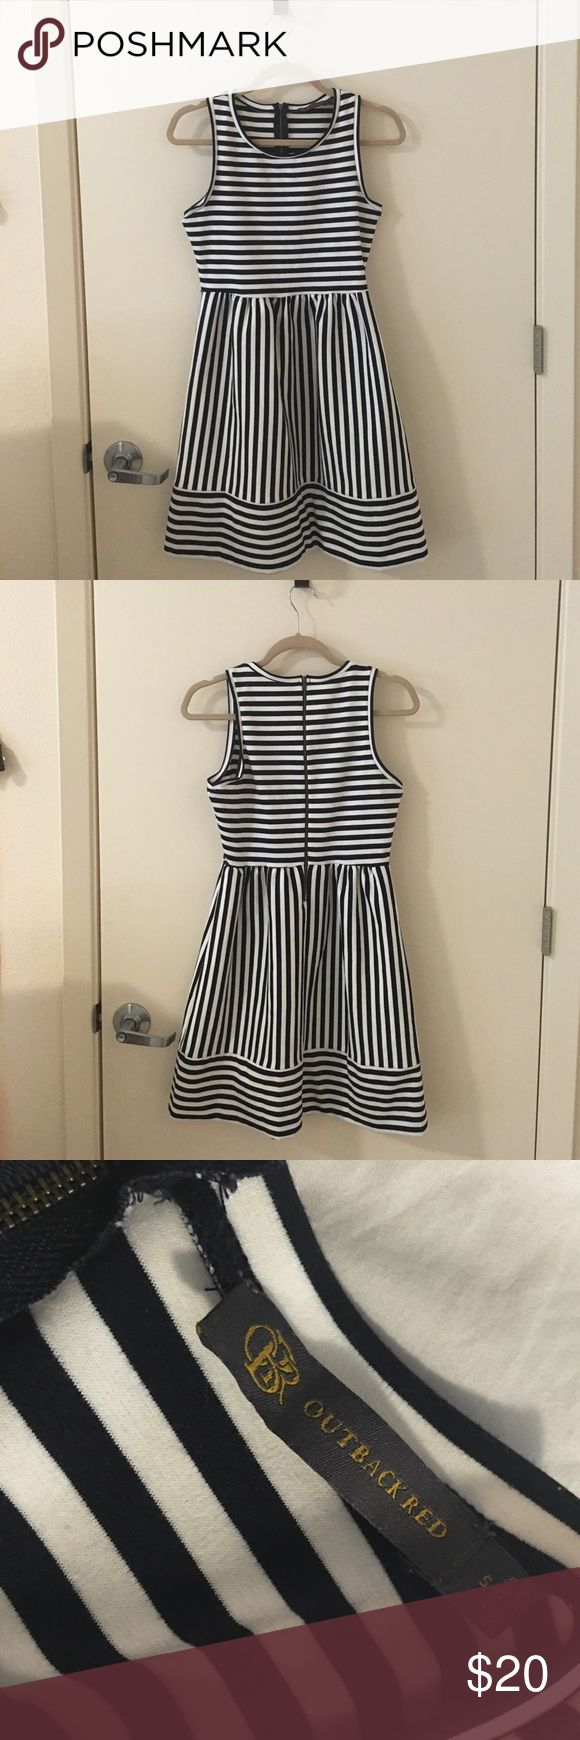 The Limited - Navy and white striped work dress Outback Red from The Limited. Navy and white striped dress. Perfect for work! Pre-owned. Still in great condition. No rips, tears or stains. Selling as-is. The Limited Dresses Midi